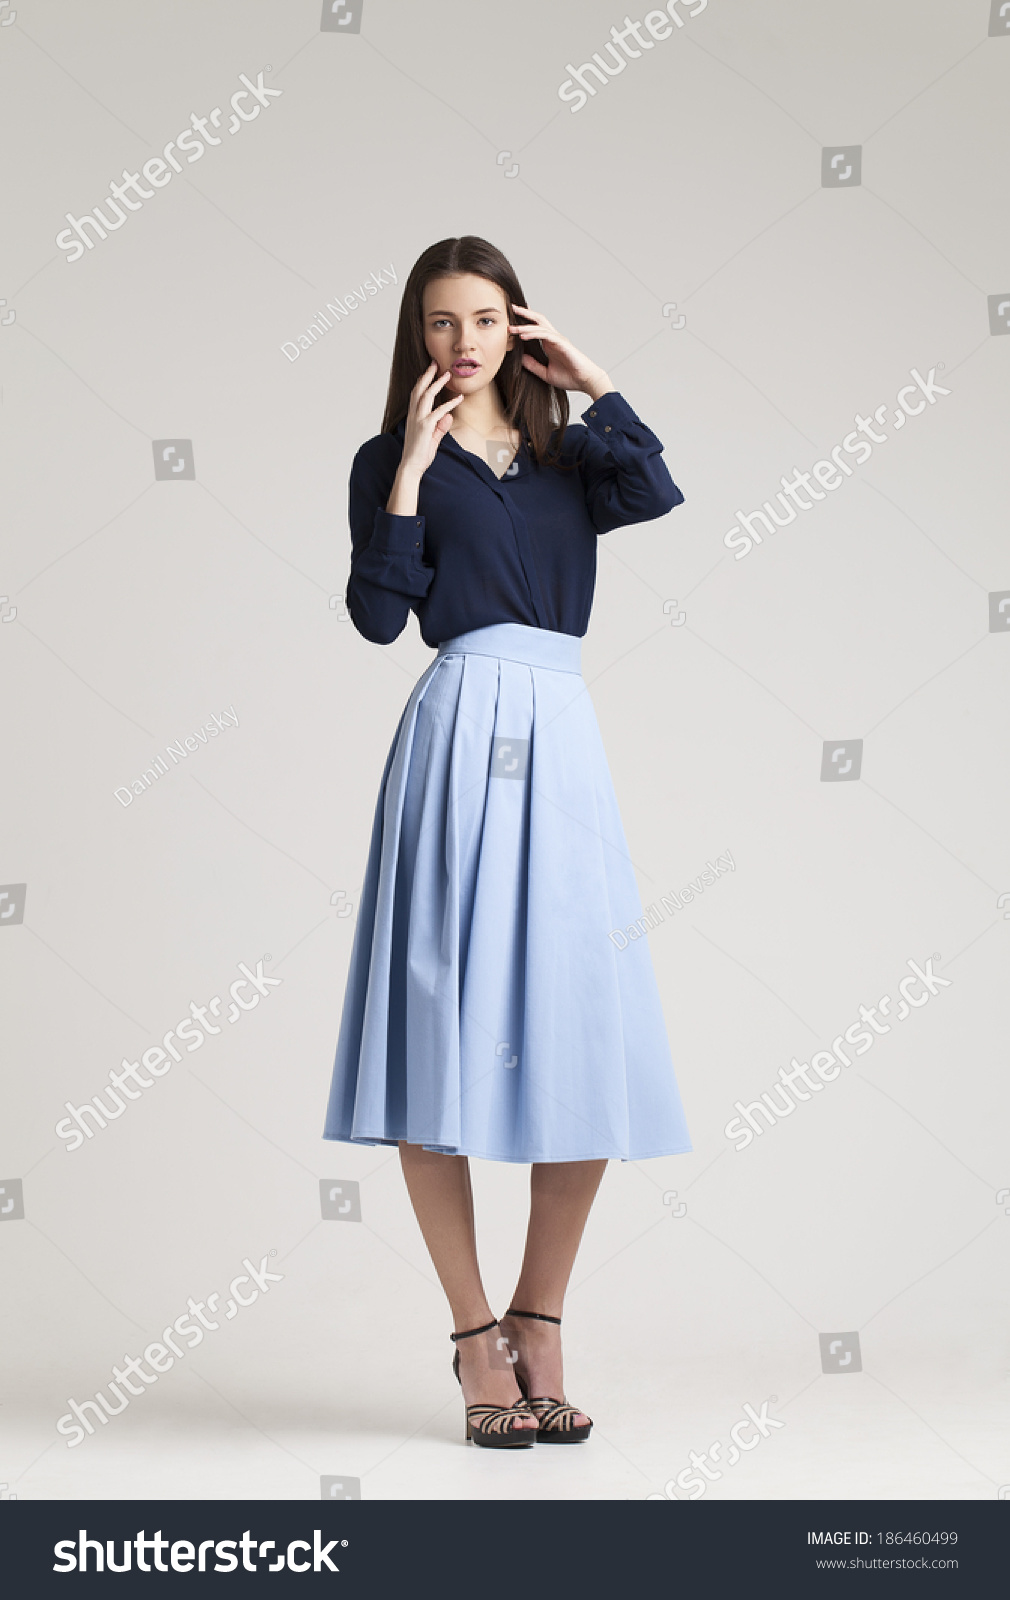 Girl Fashion Dress Spring Collection Stock Photo 186460499